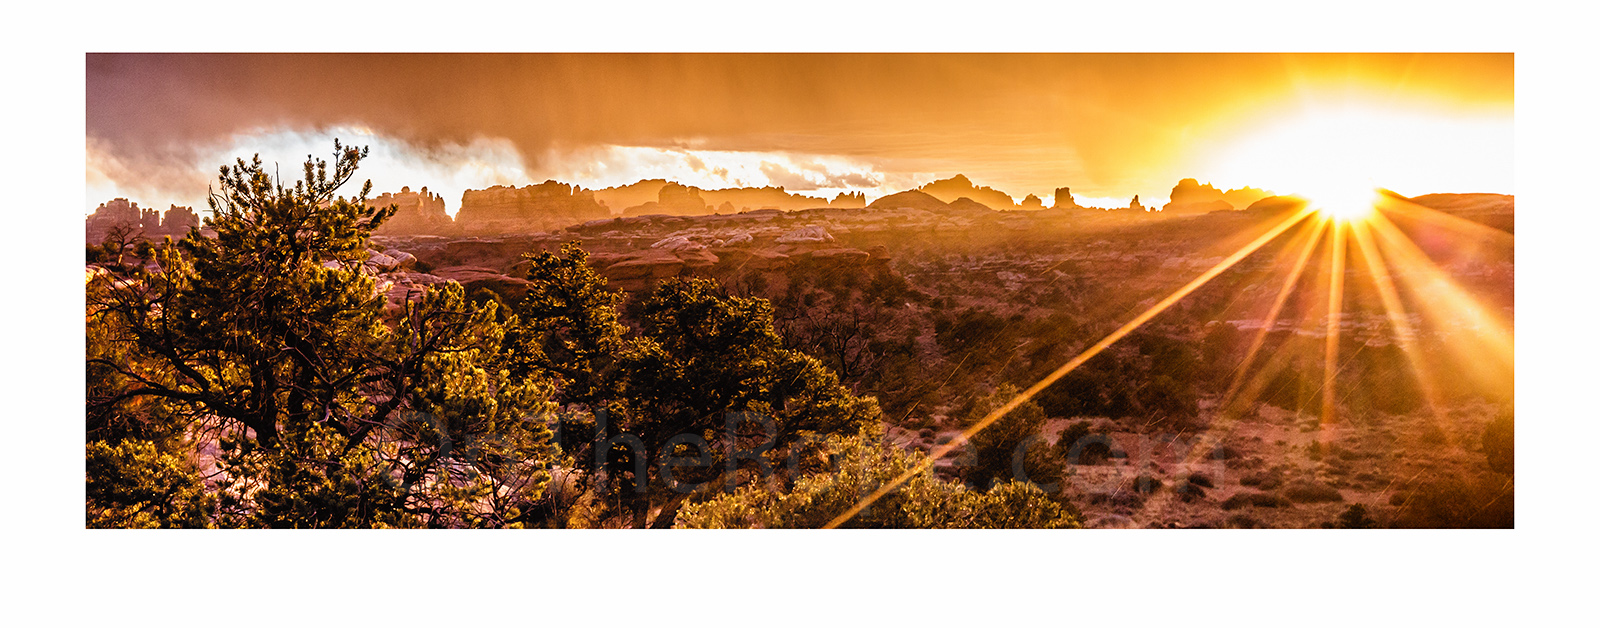 Winning photo: Canyonlands National Park, Utah, USA